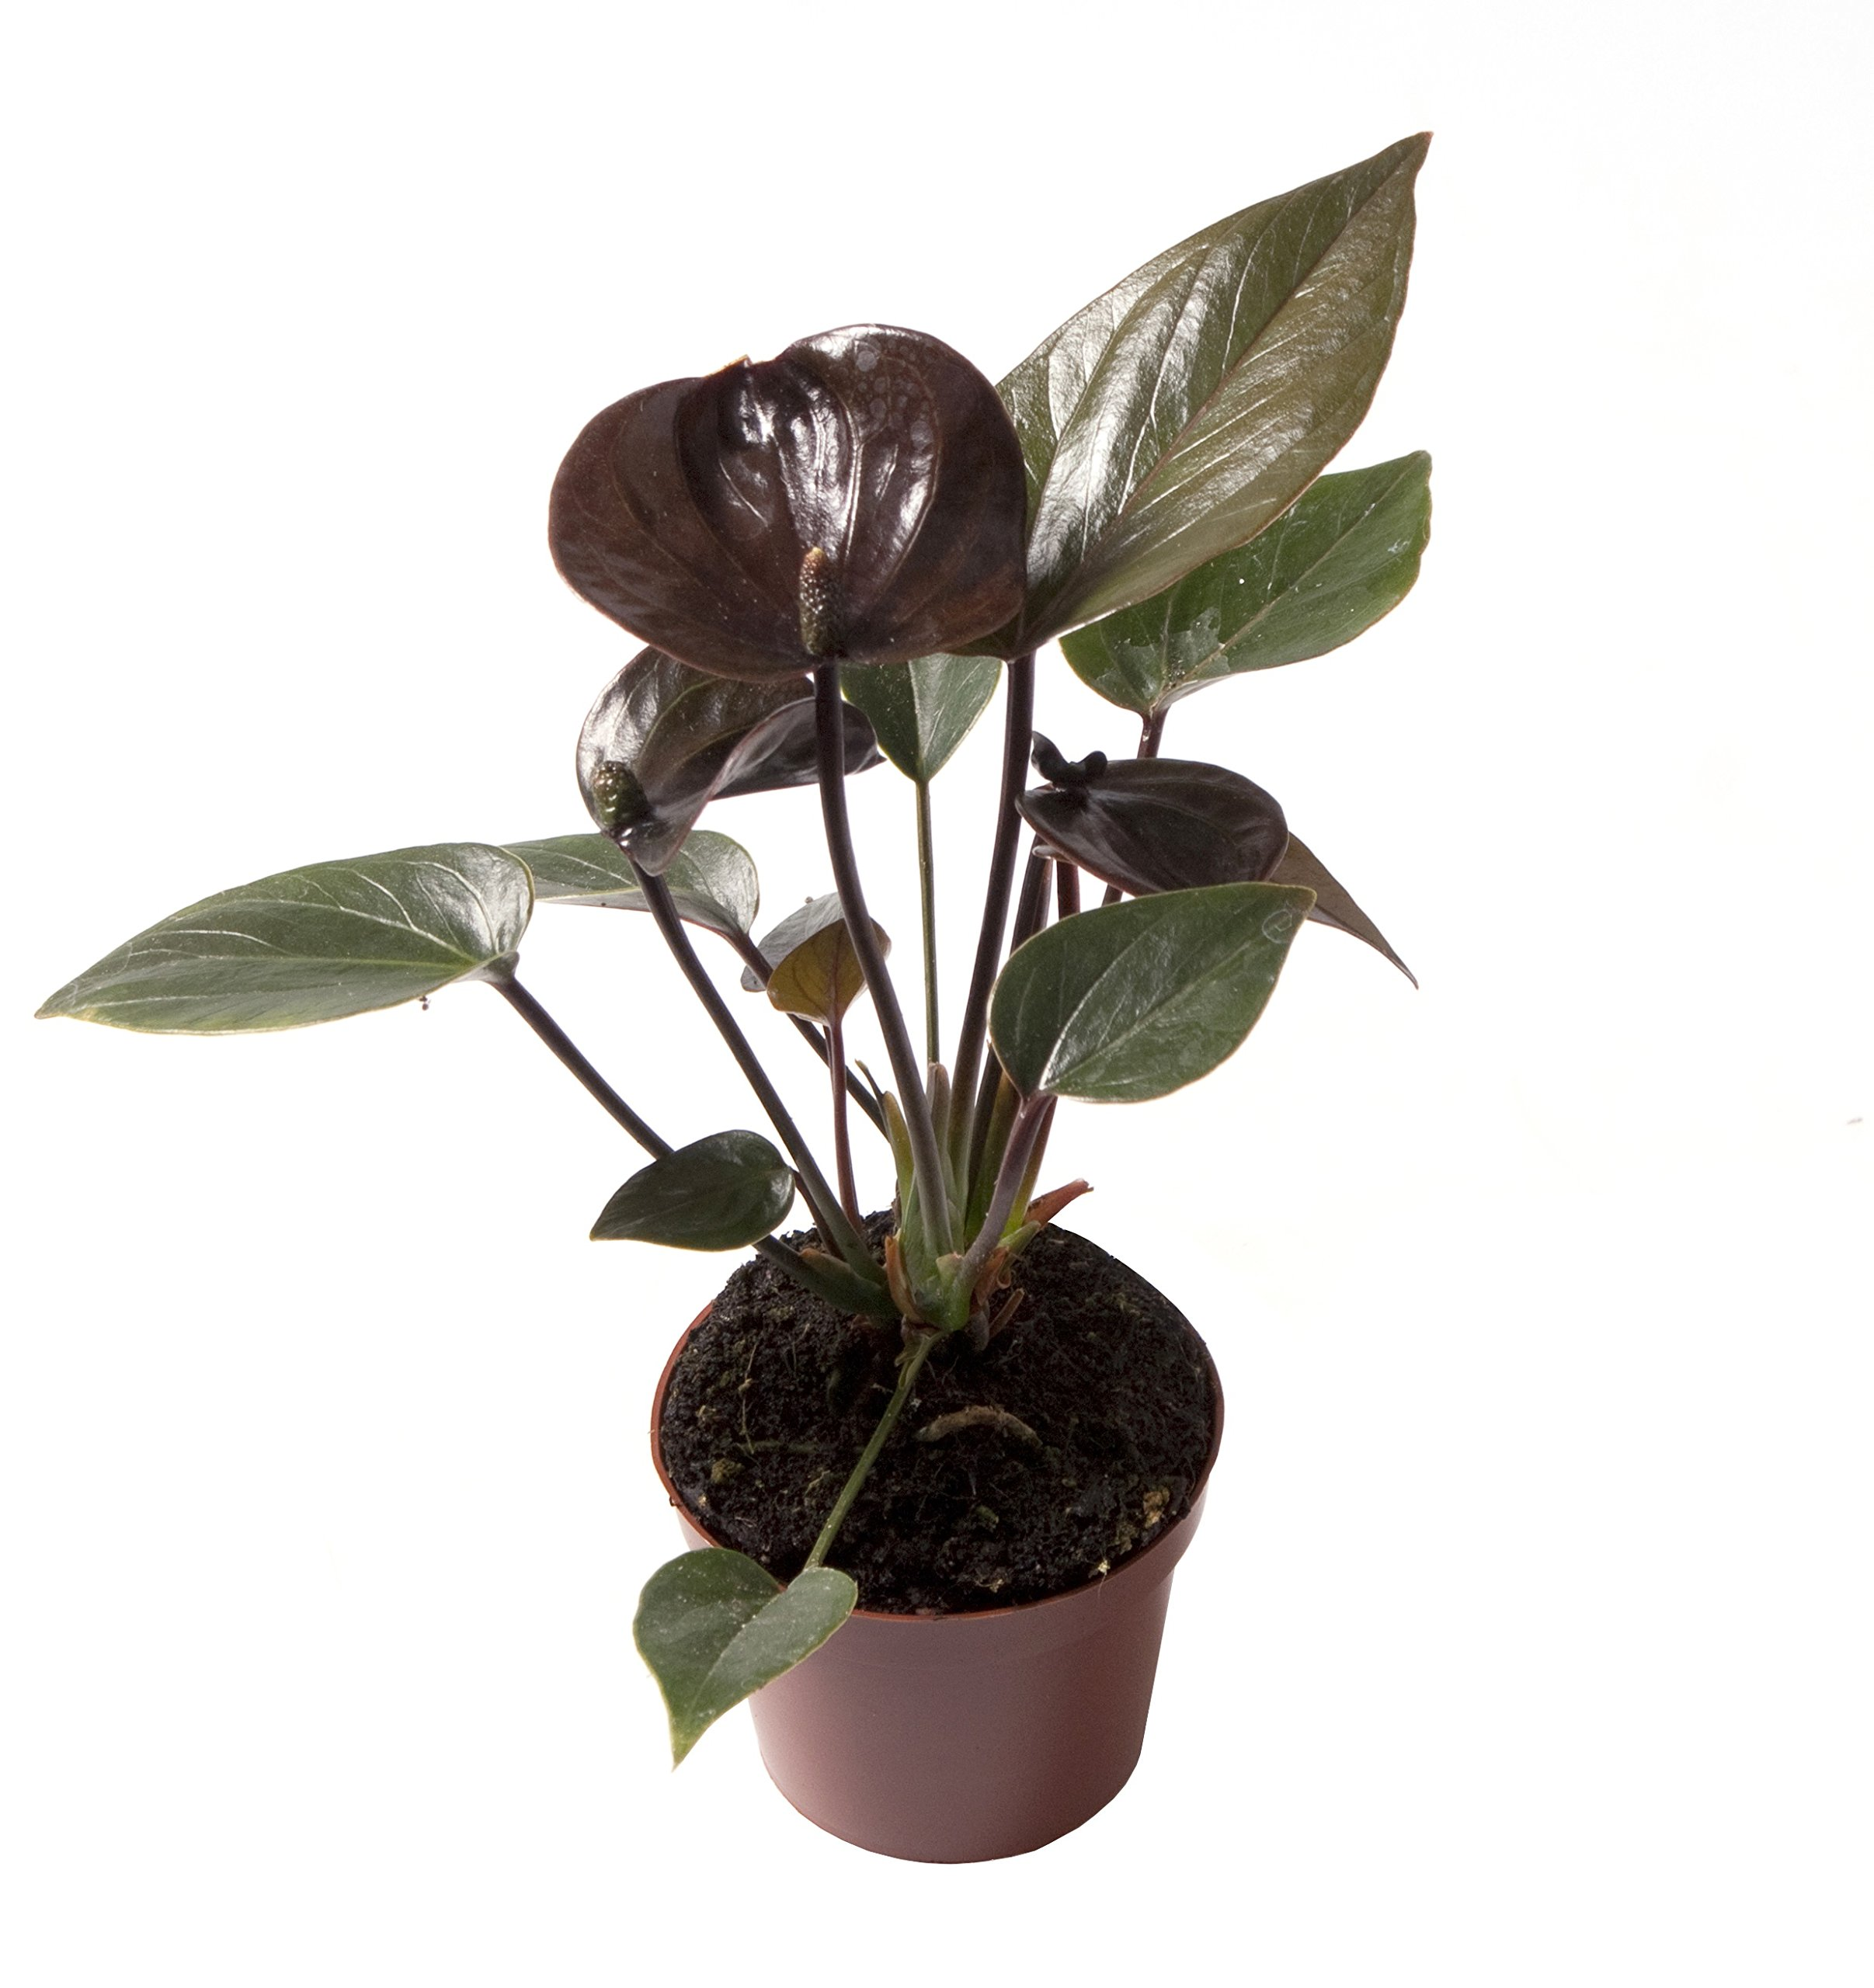 Anthurium Dark Chocolate - Live House Plant - Easy to Grow - Florist Quality - Cleans the Air by Florida Foliage (Image #3)